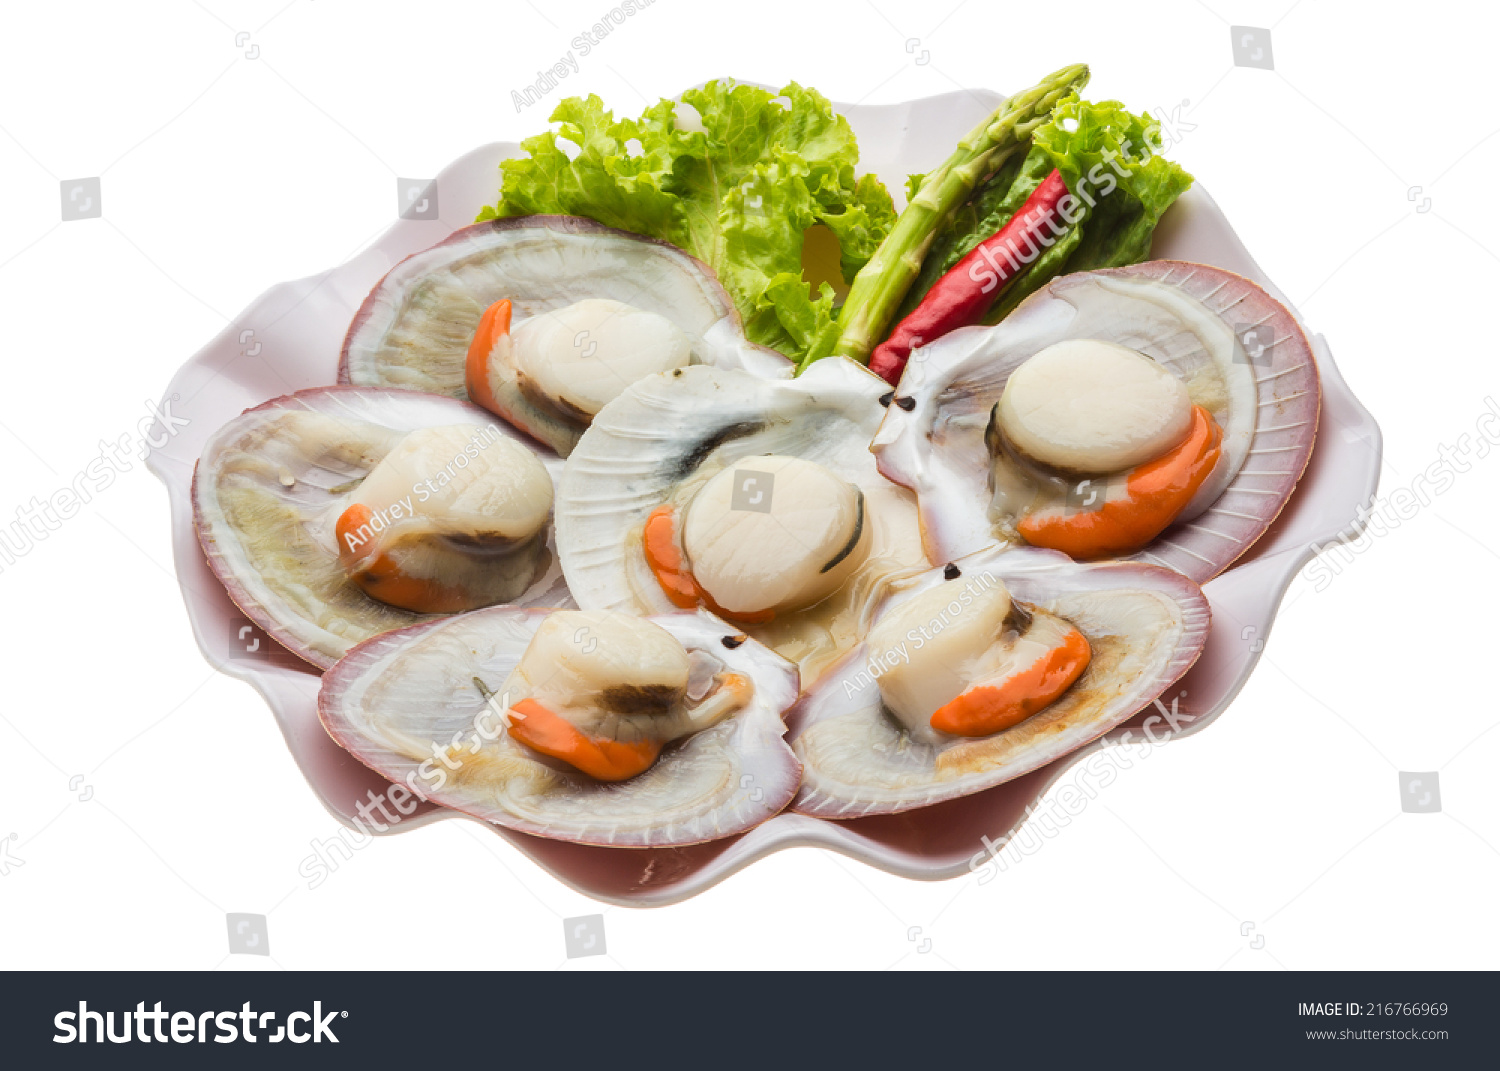 how to prepare scallops for cooking